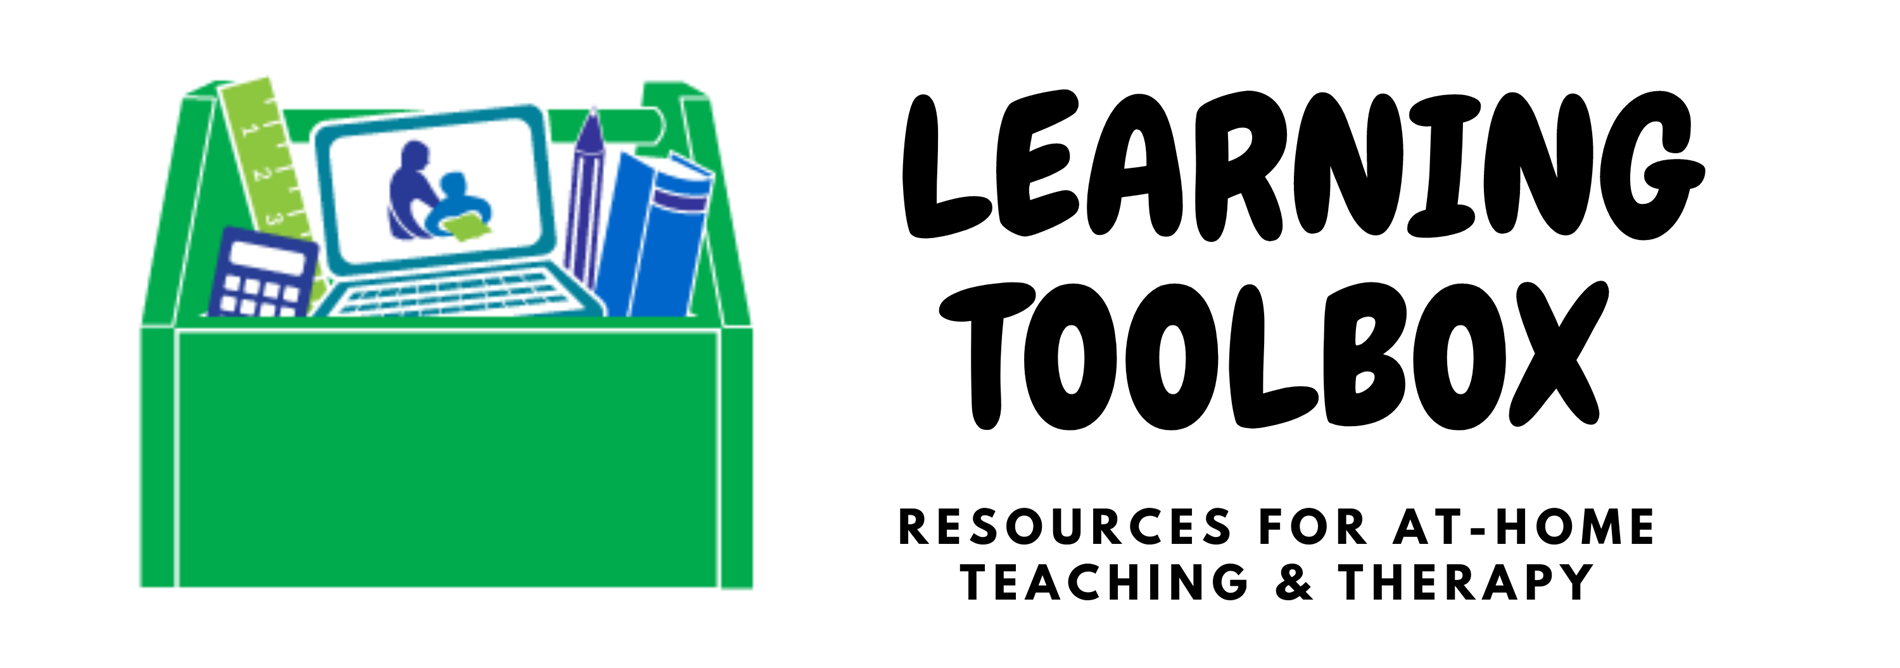 Learning Toolbox